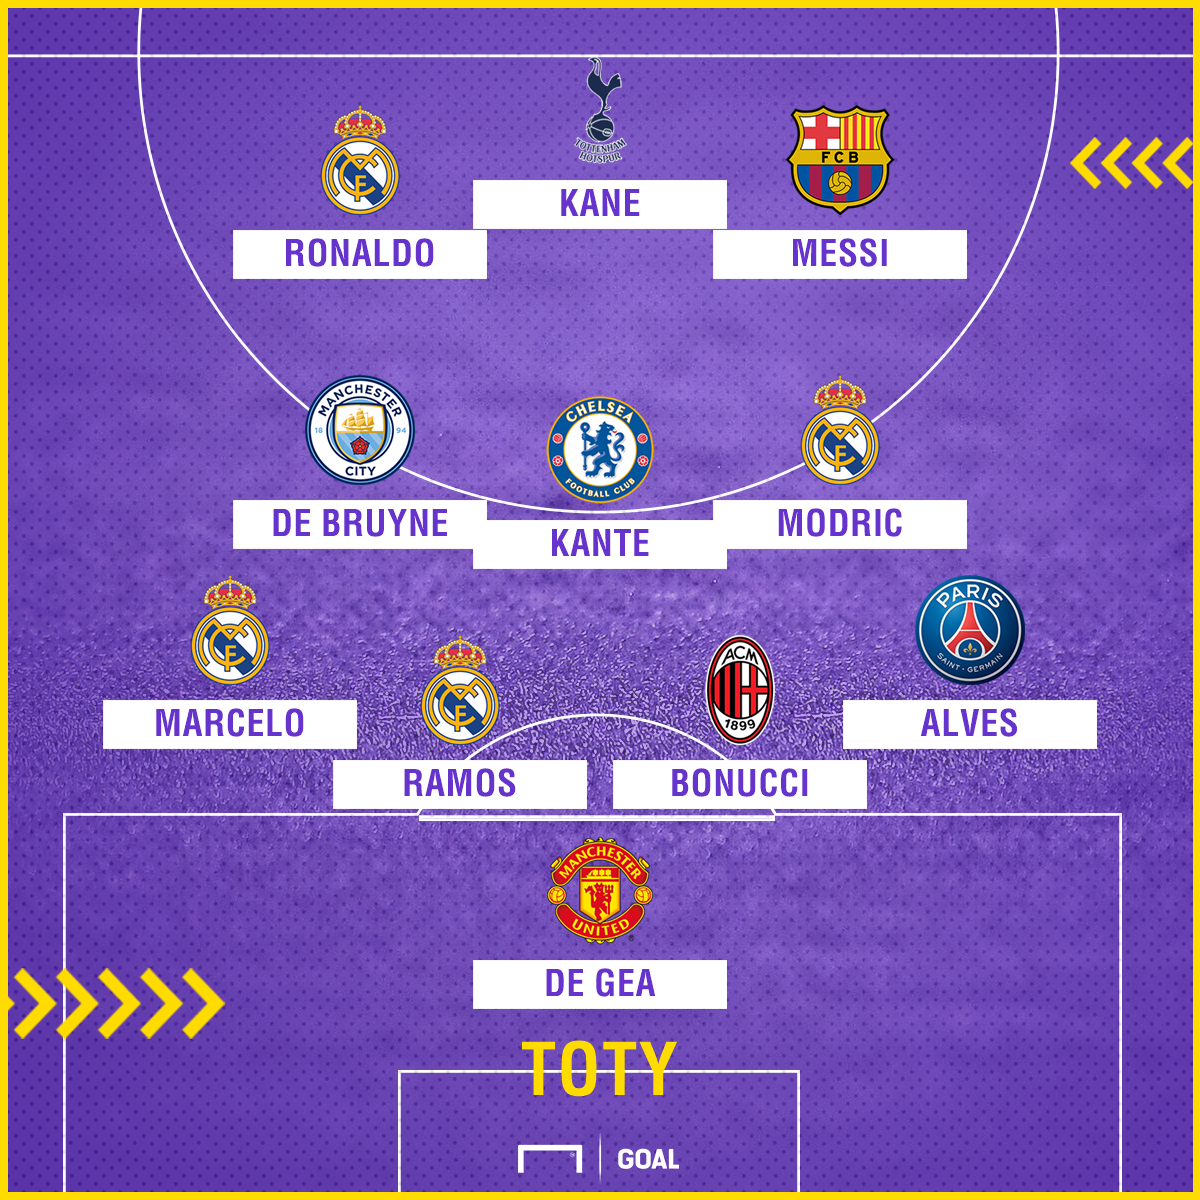 Premier League 17 Matchday Round Season 2018 2019: Ramos, Marcelo And De Gea Round Out FIFA 18's Team Of The